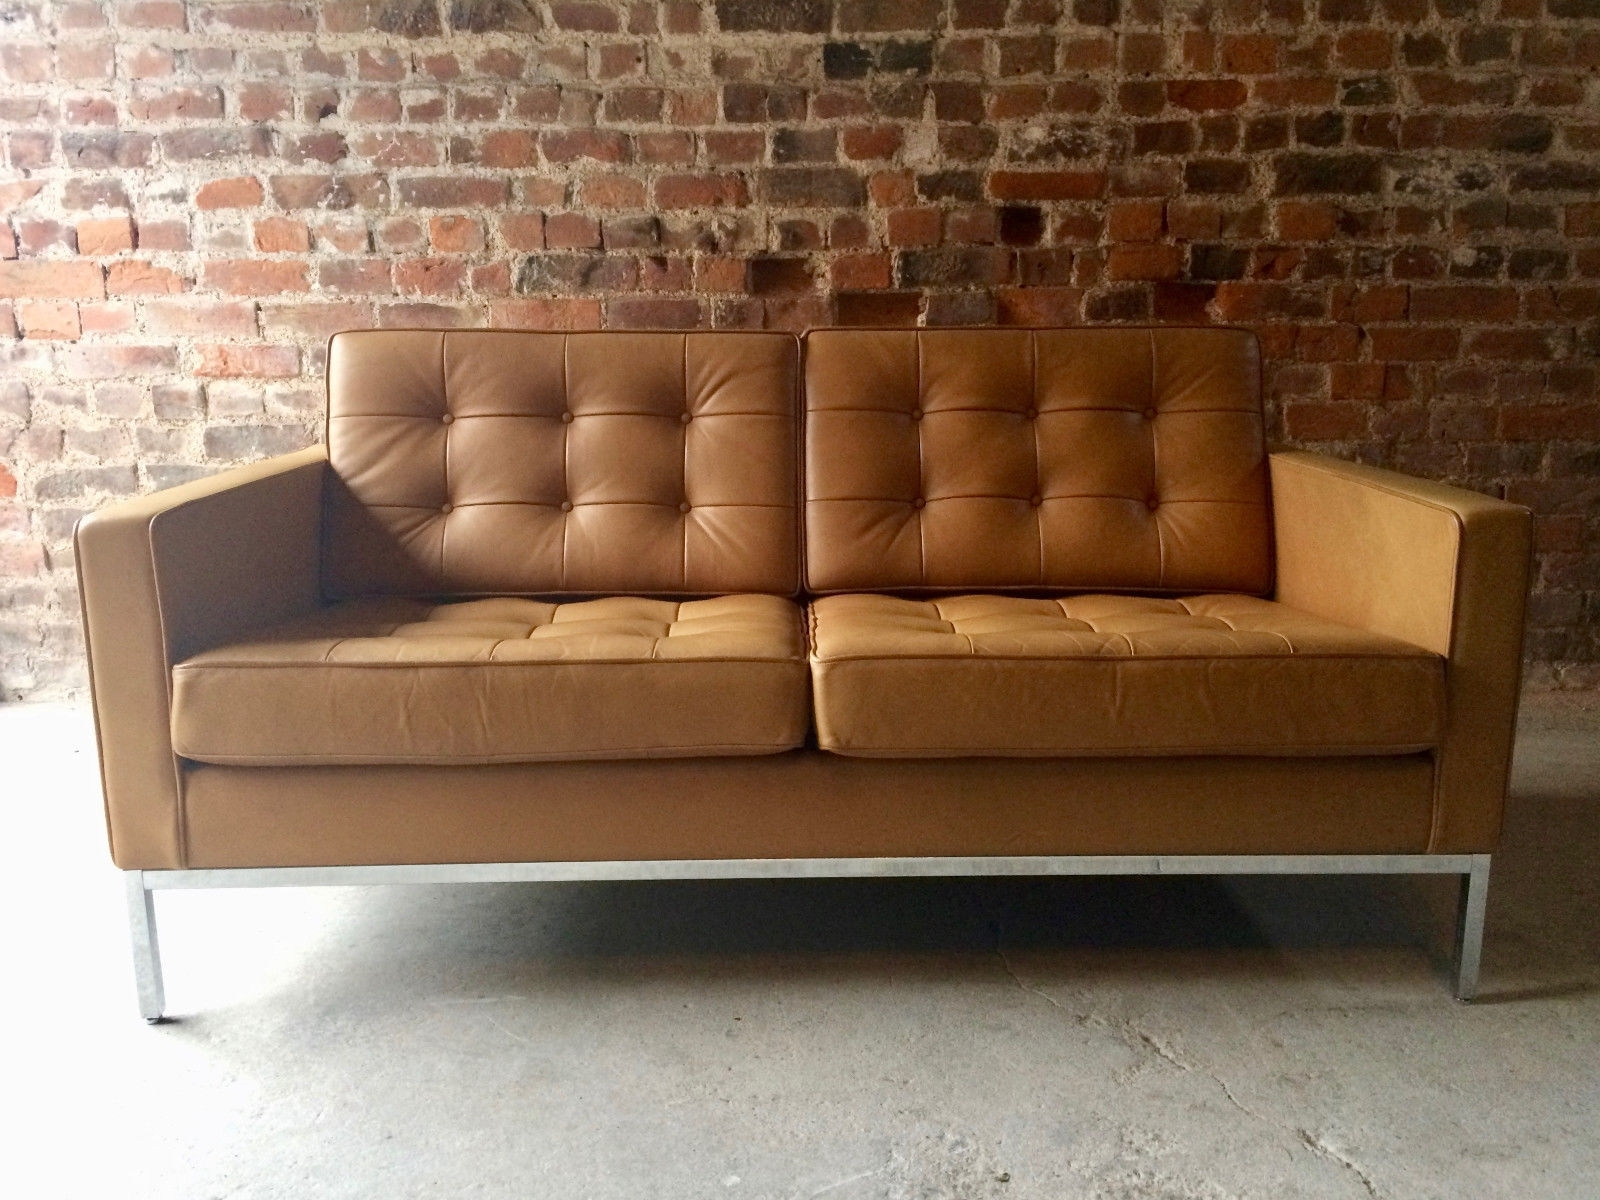 Latest Florence Leather Sofas In Vintage 2 Seater Leather Sofaflorence Knoll For Knoll For Sale (View 3 of 15)